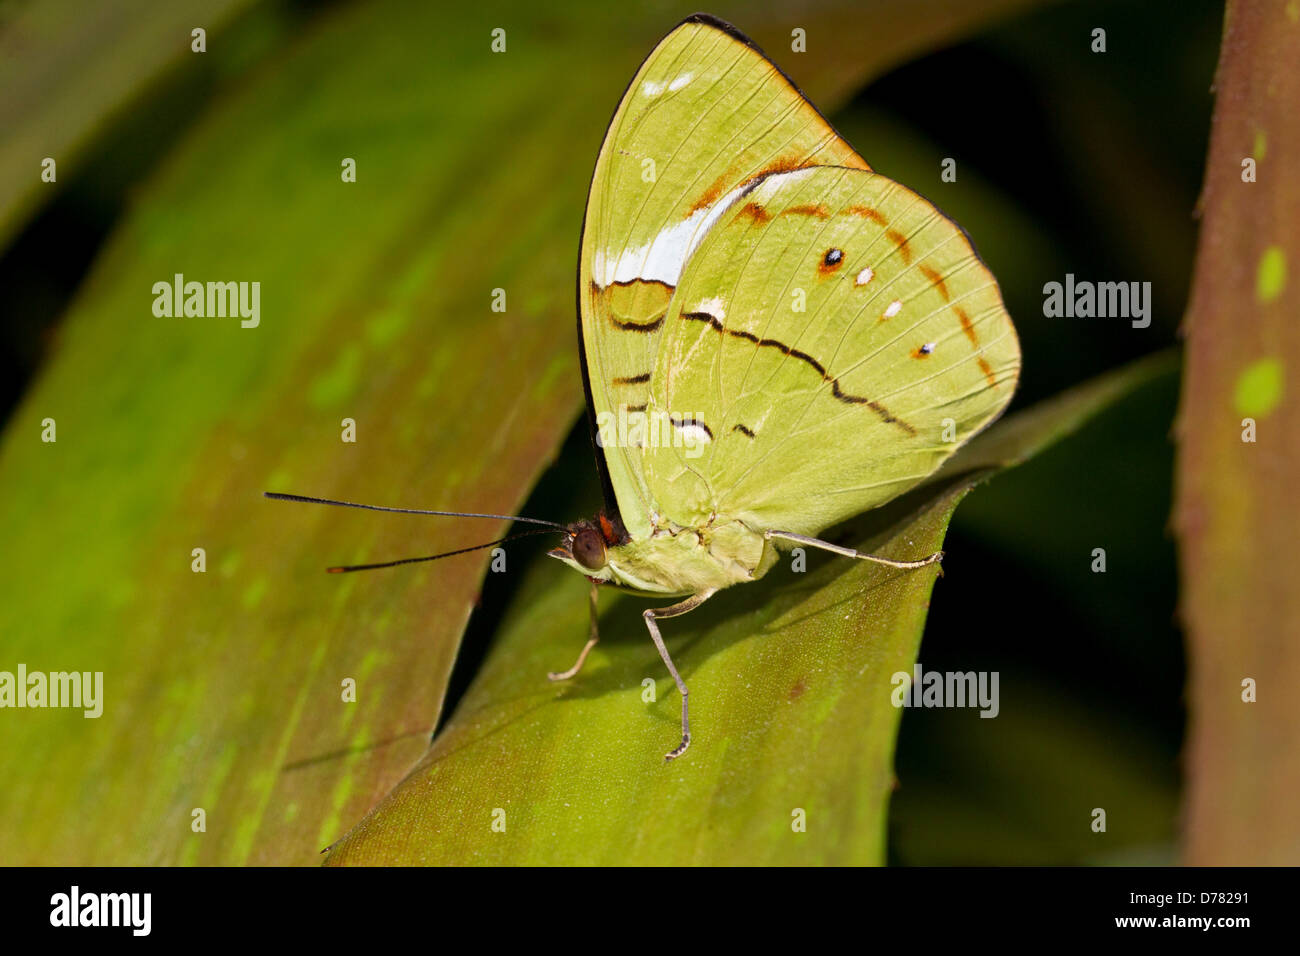 Bộ sưu tập cánh vẩy 4 - Page 10 Male-common-olivewing-butterfly-nessaea-aglaura-perched-on-green-leaf-D78291